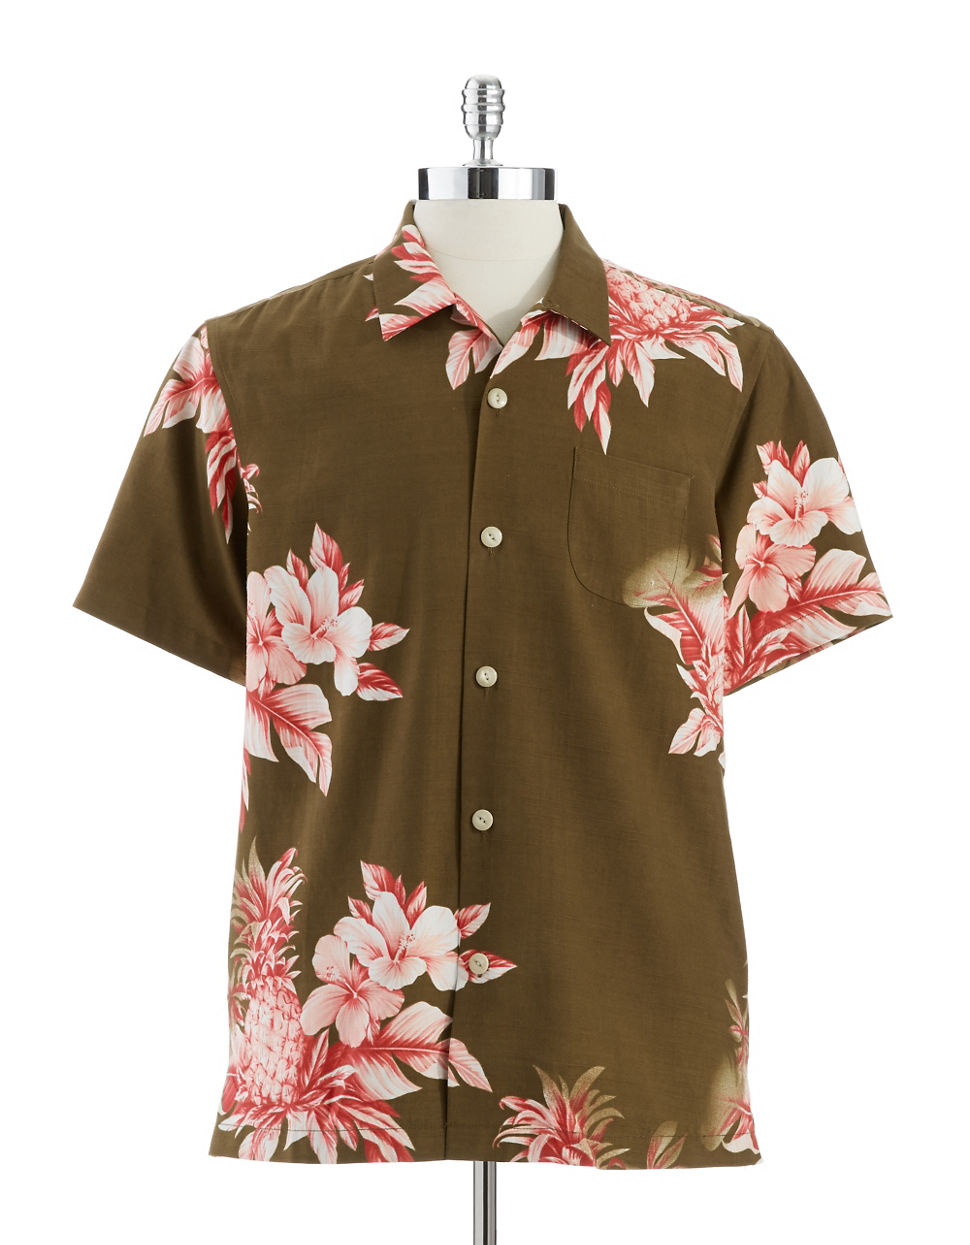 Tommy bahama pina colada pineapple buttondown shirt in for Tommy bahama christmas shirt 2014